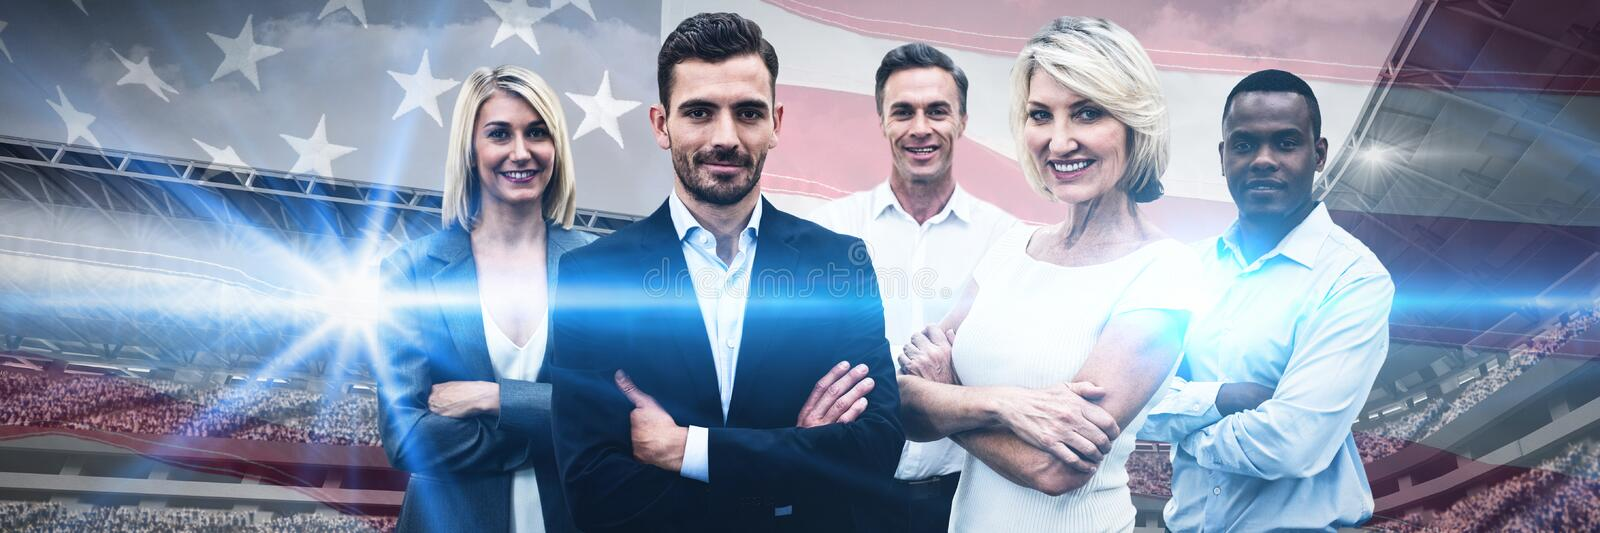 Composite image of confident business people with arms crossed standing over white background royalty free stock images